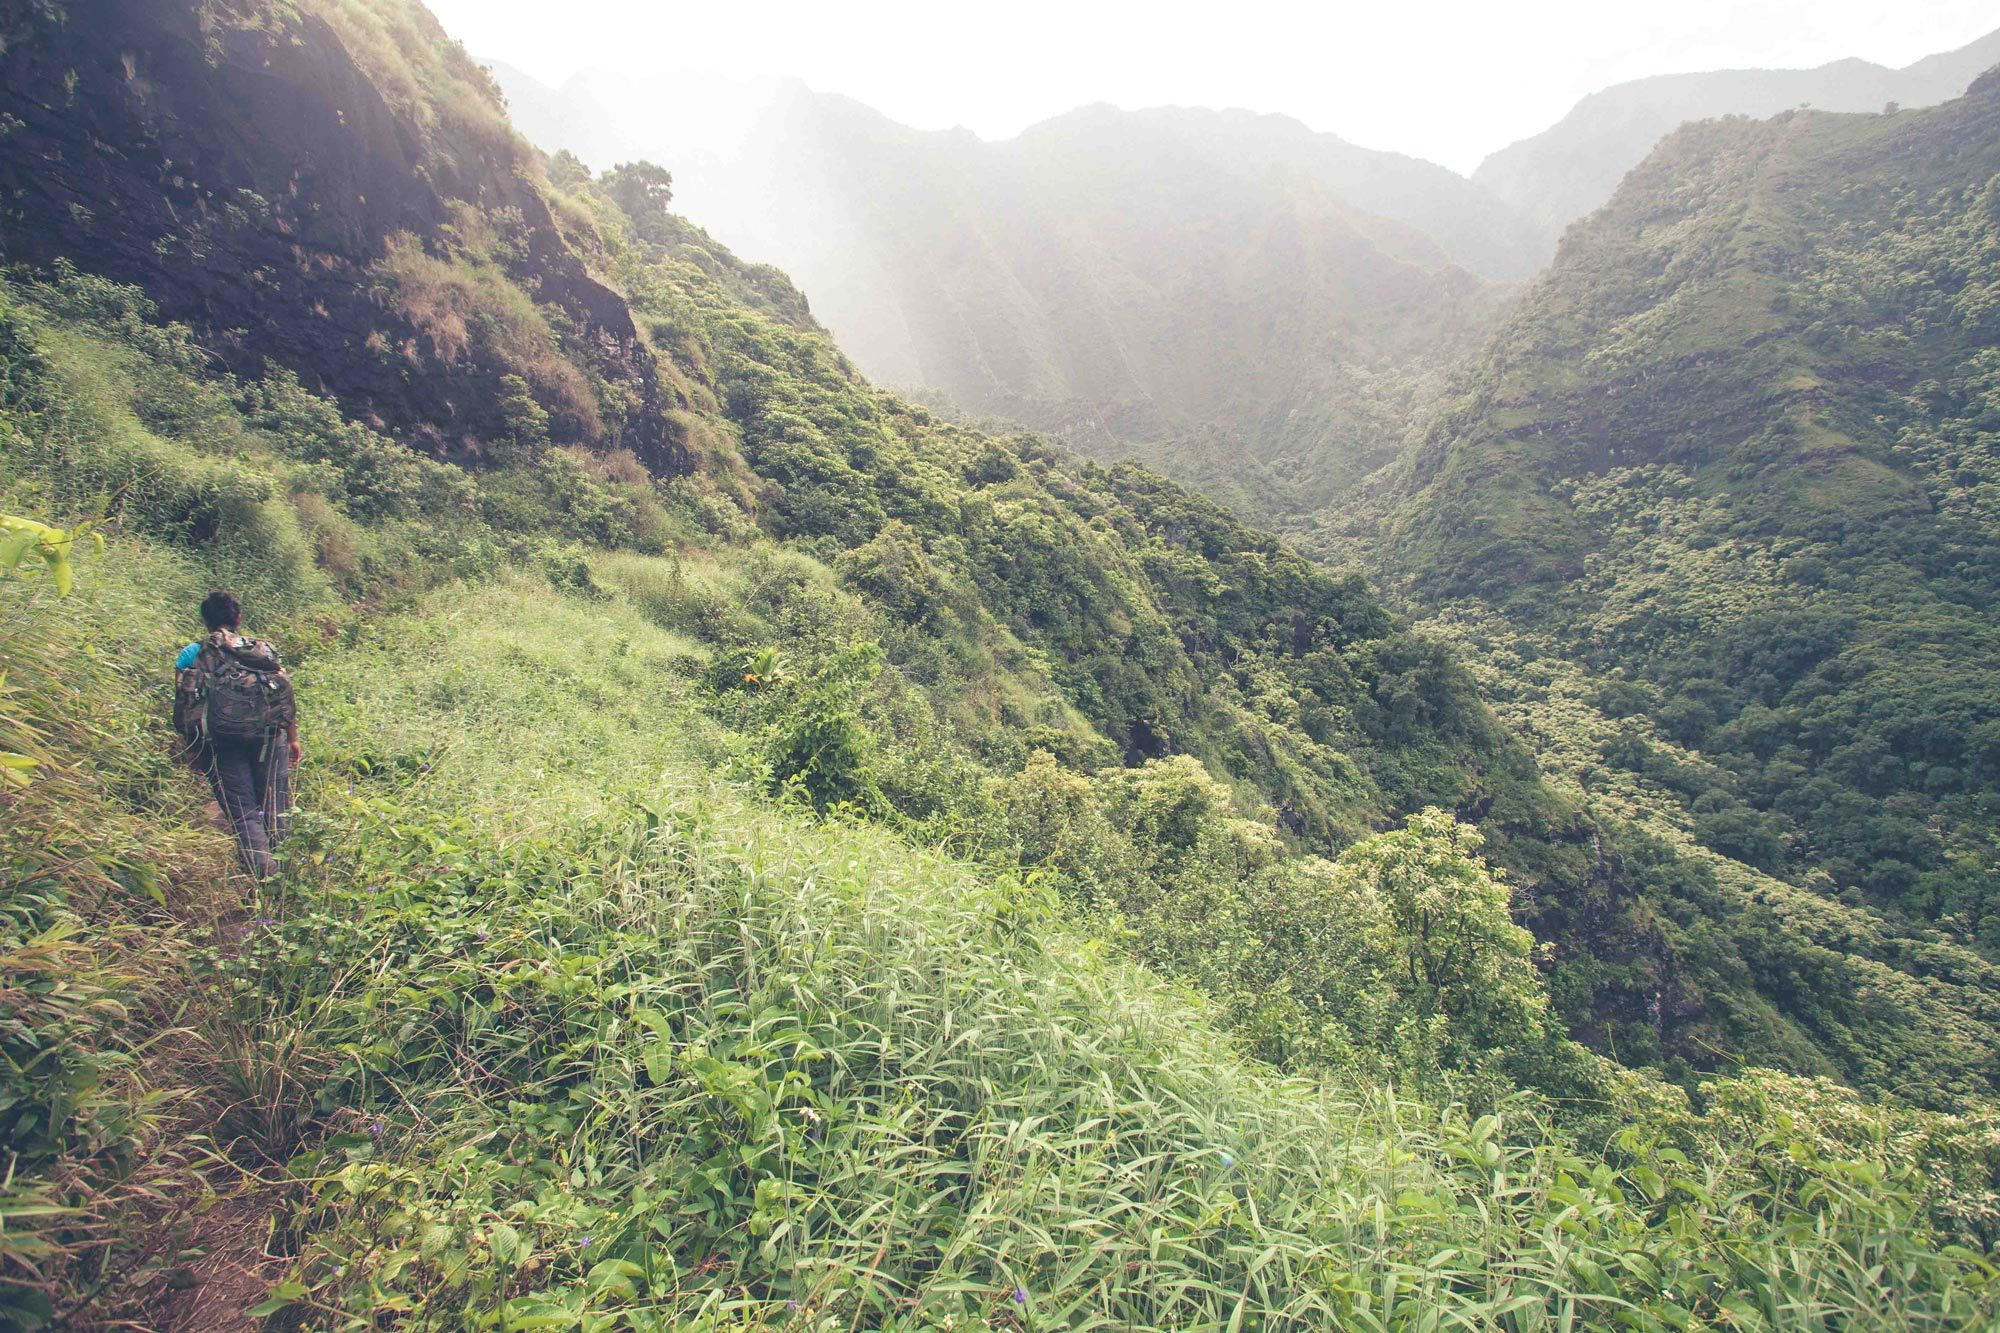 The unexpected and the steep cliffs